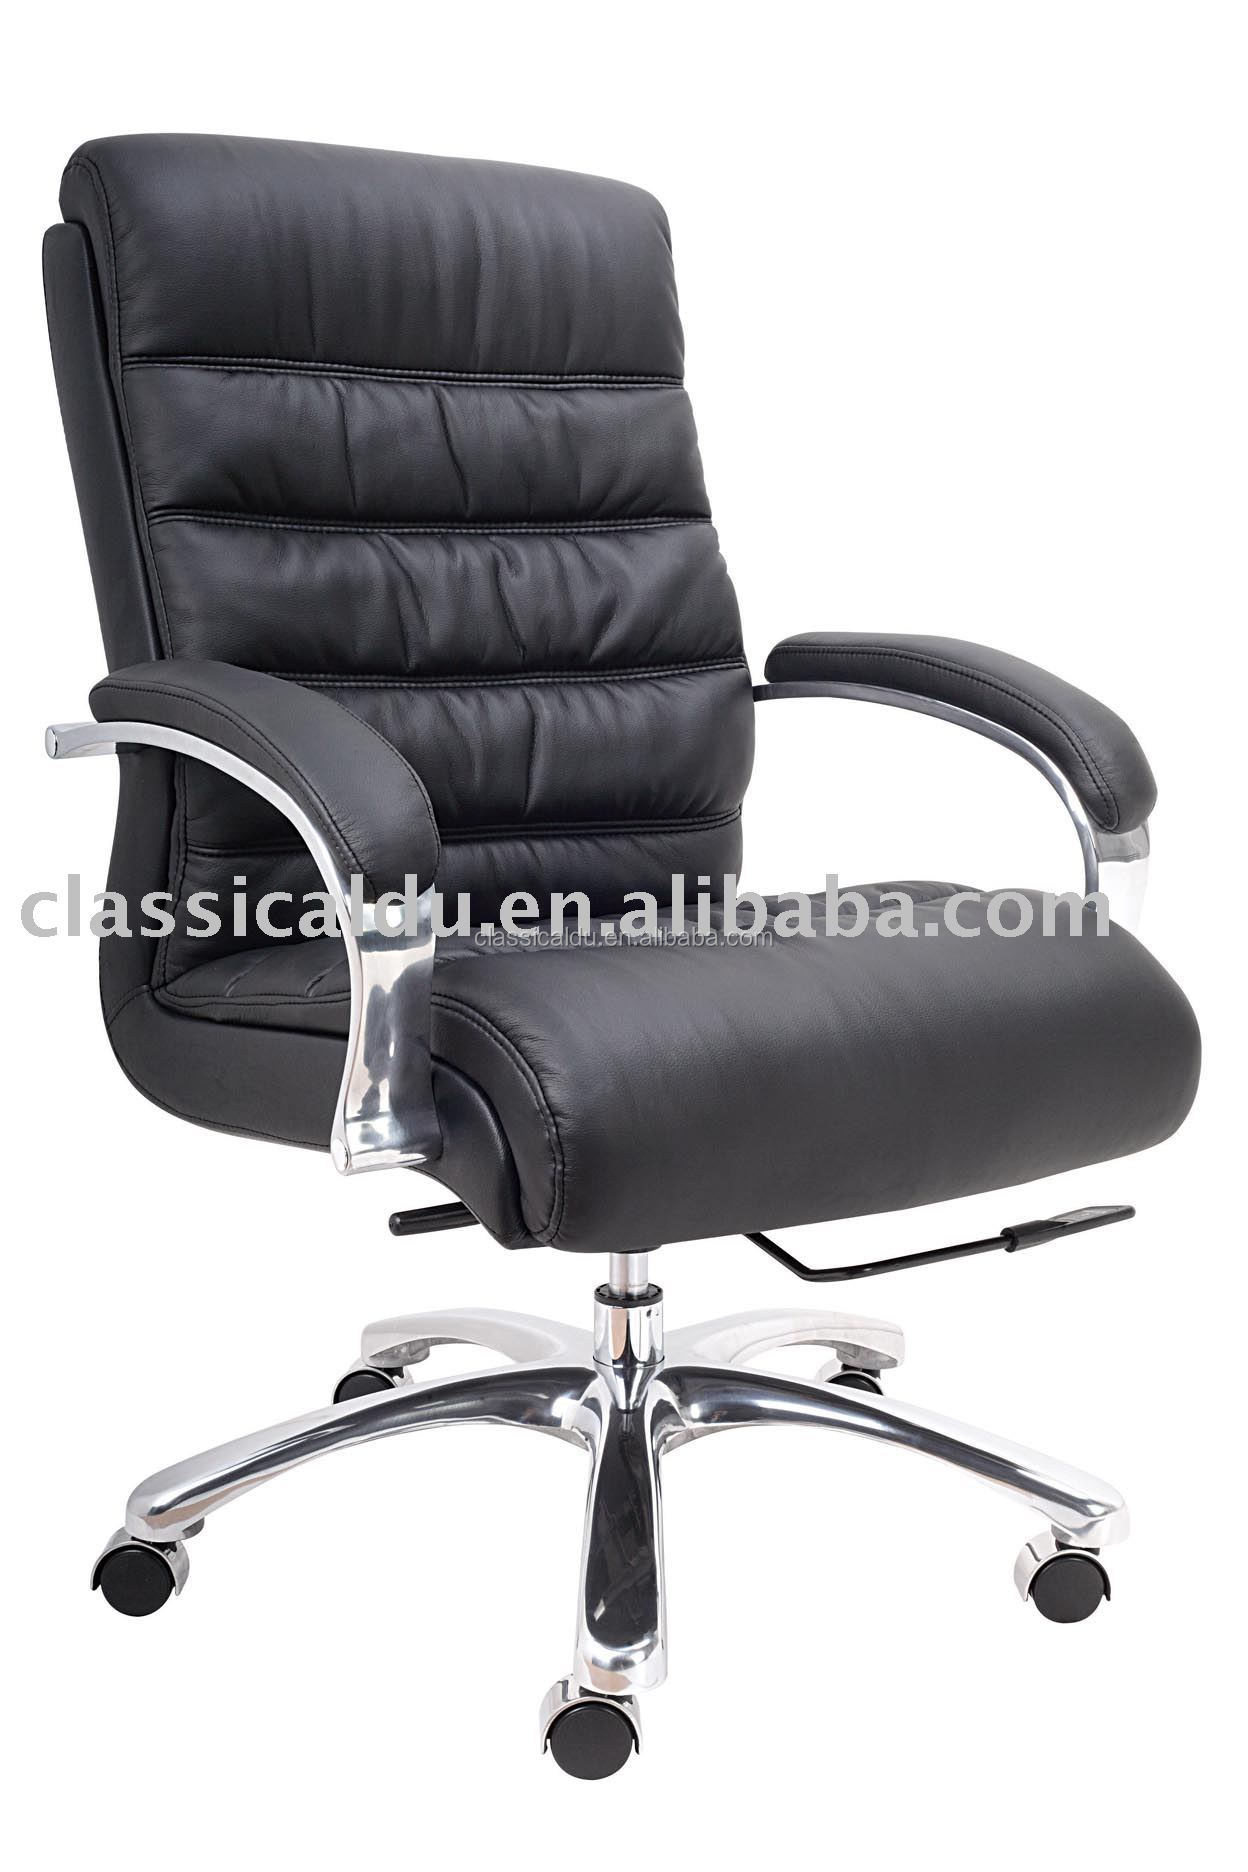 fice Chair Parts fice Chair Parts Suppliers and Manufacturers